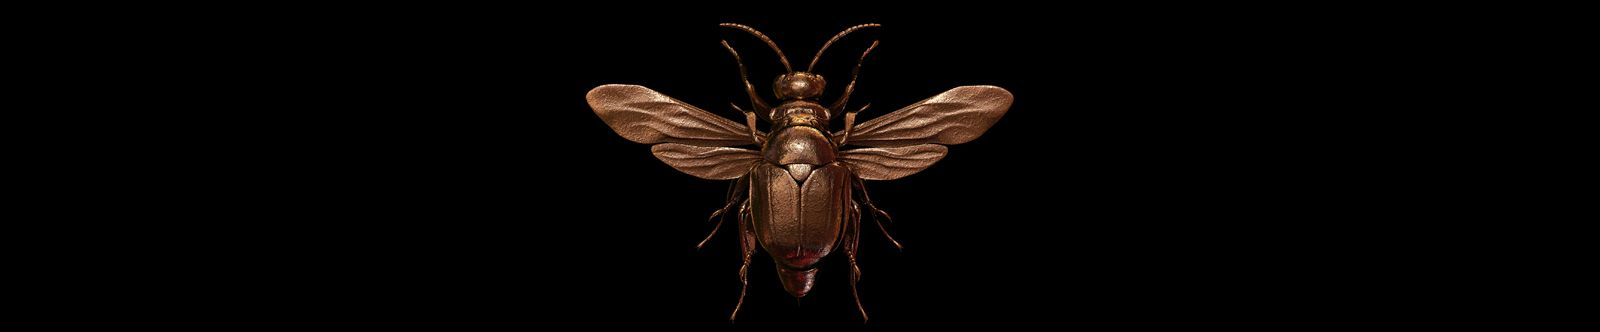 Engraved Entomology on Behance